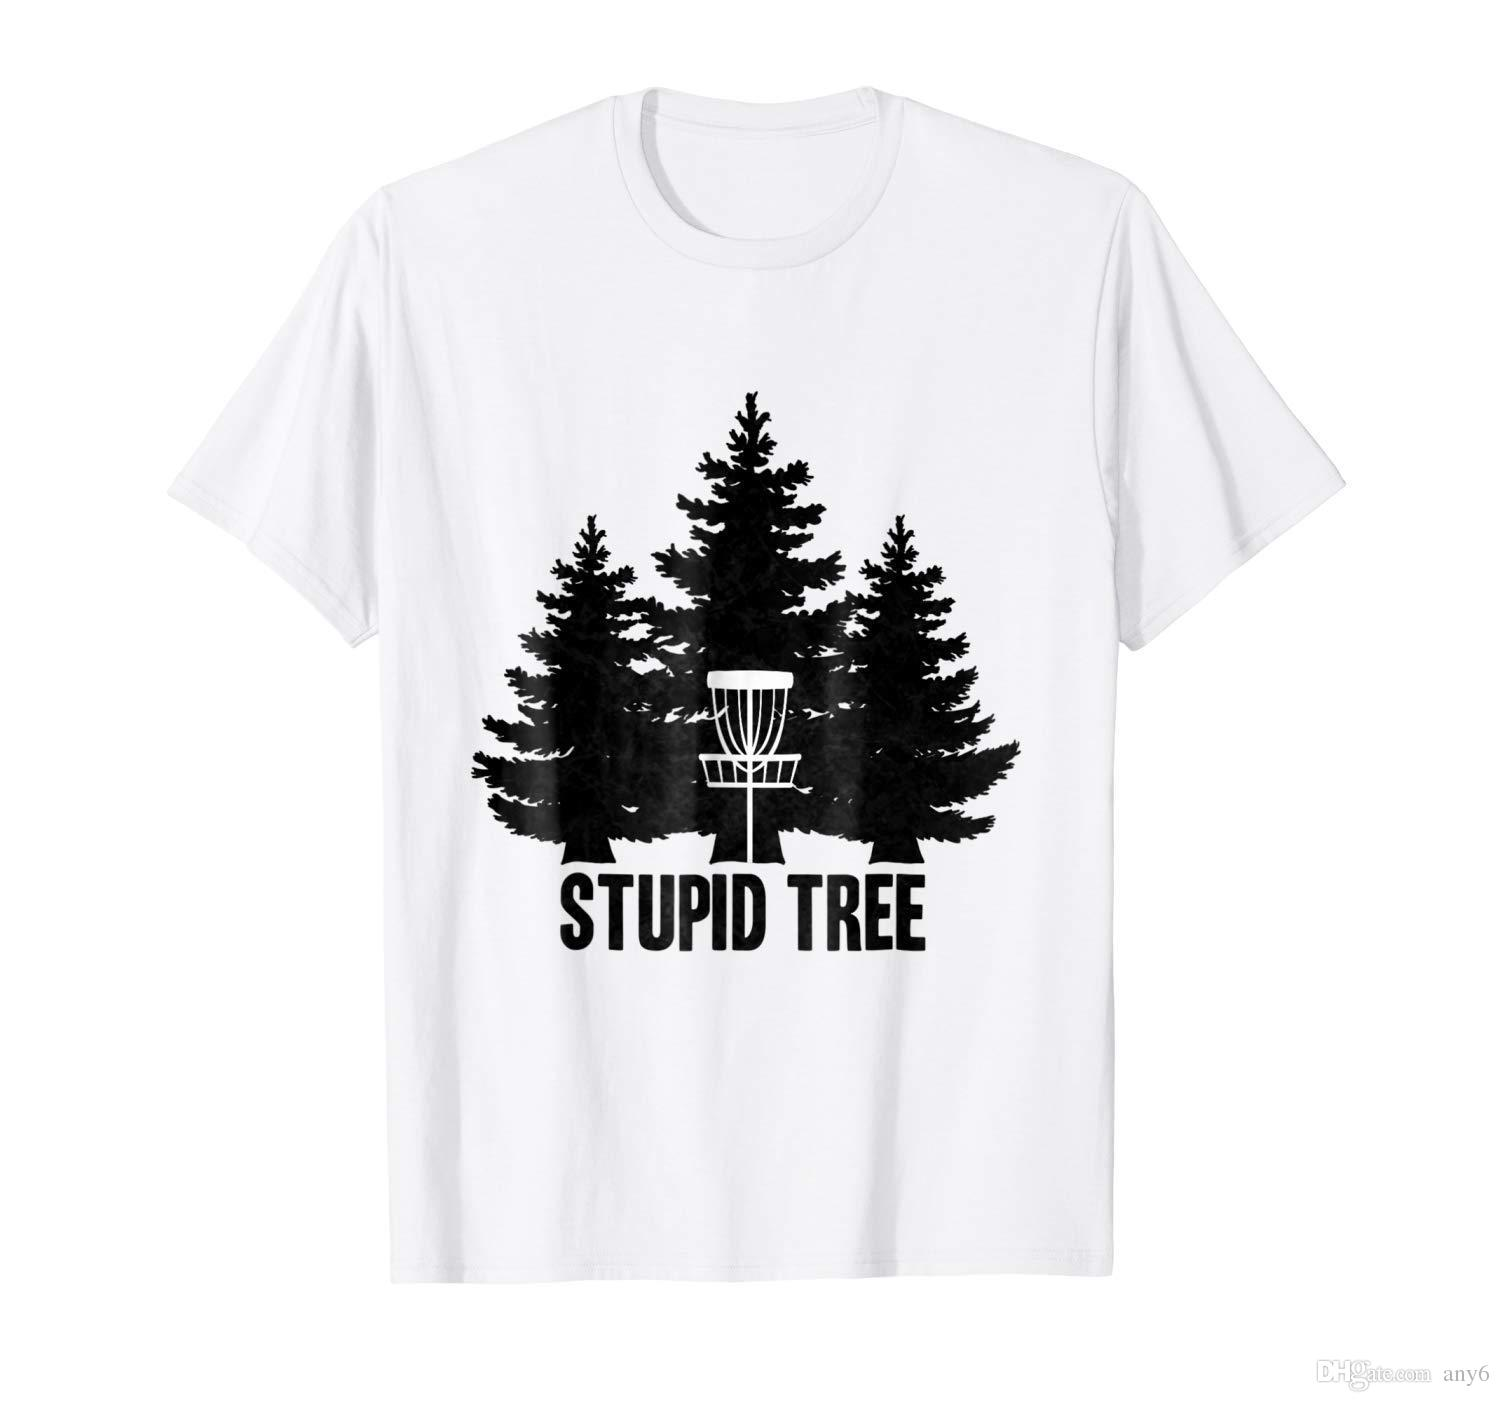 b9e89b786 Disc Golf Stupid Tree White T Shirt S 3XL Clever Funny T Shirts Funny  Tshirts From Any6, $13.19  DHgate.Com